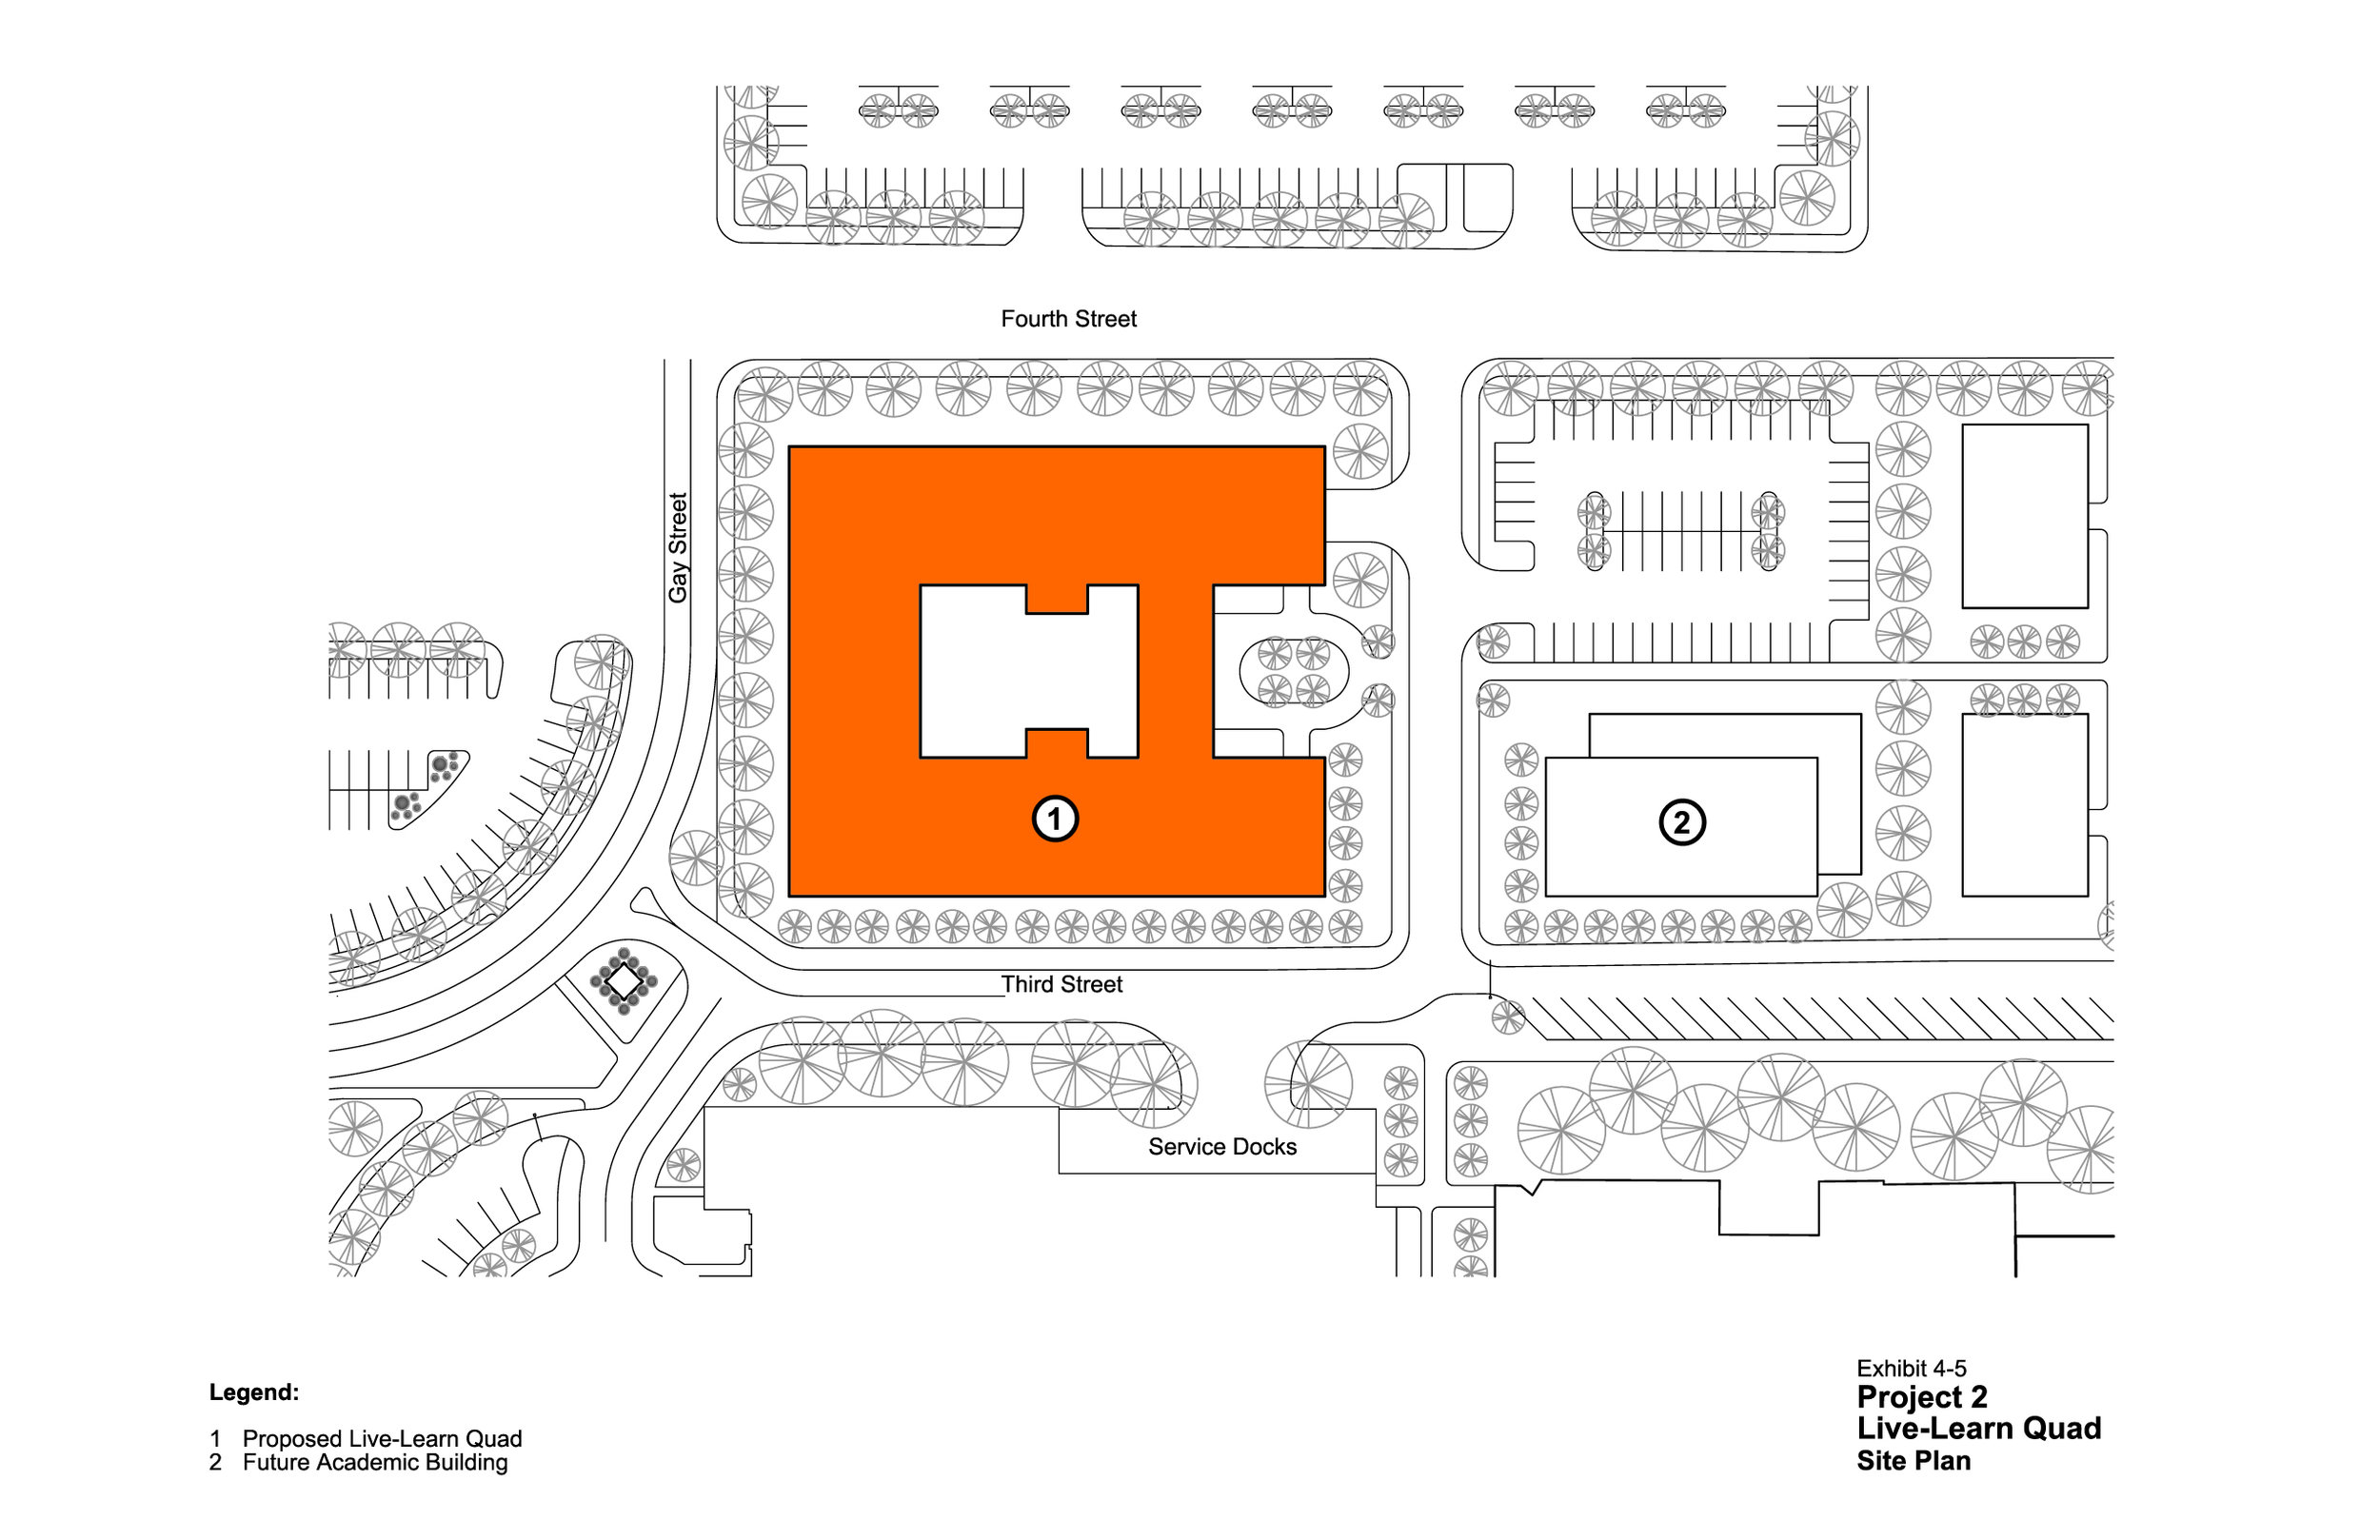 Exhibit4-5_Project 2 Site Plan.jpg